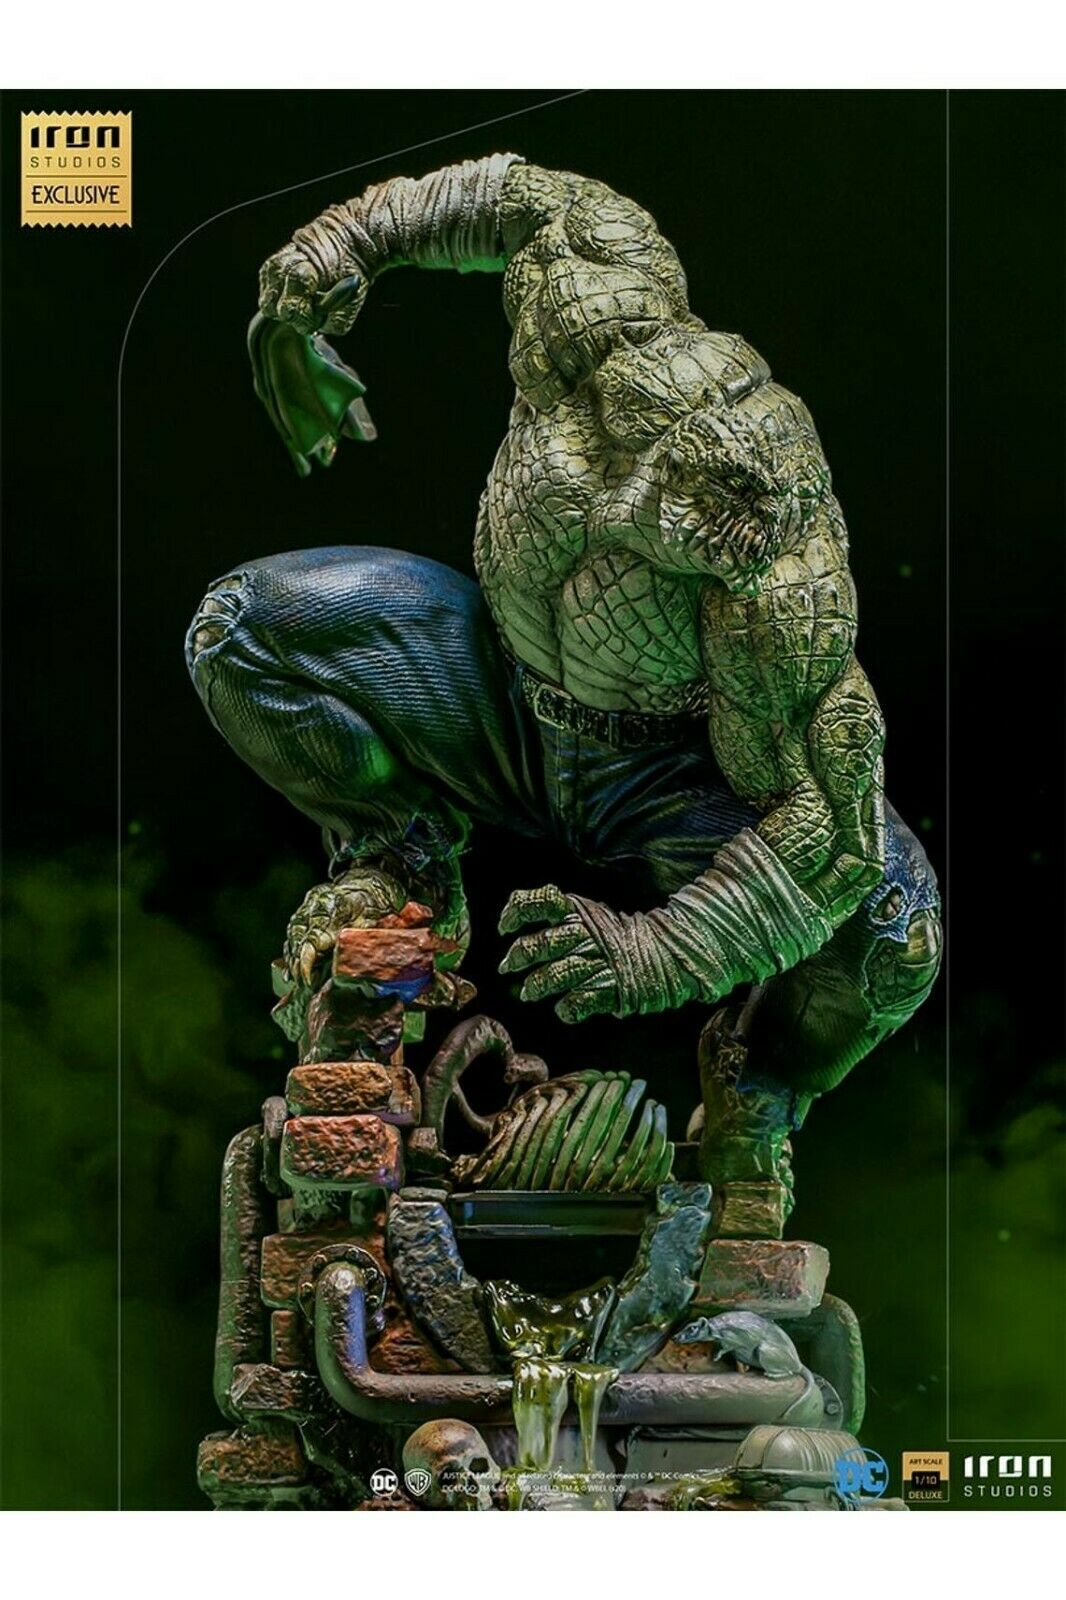 Iron Studios DC Killer Croc Deluxe Art Scale 1/10 Statue Exclusive Edtion CCXP on eBay thumbnail